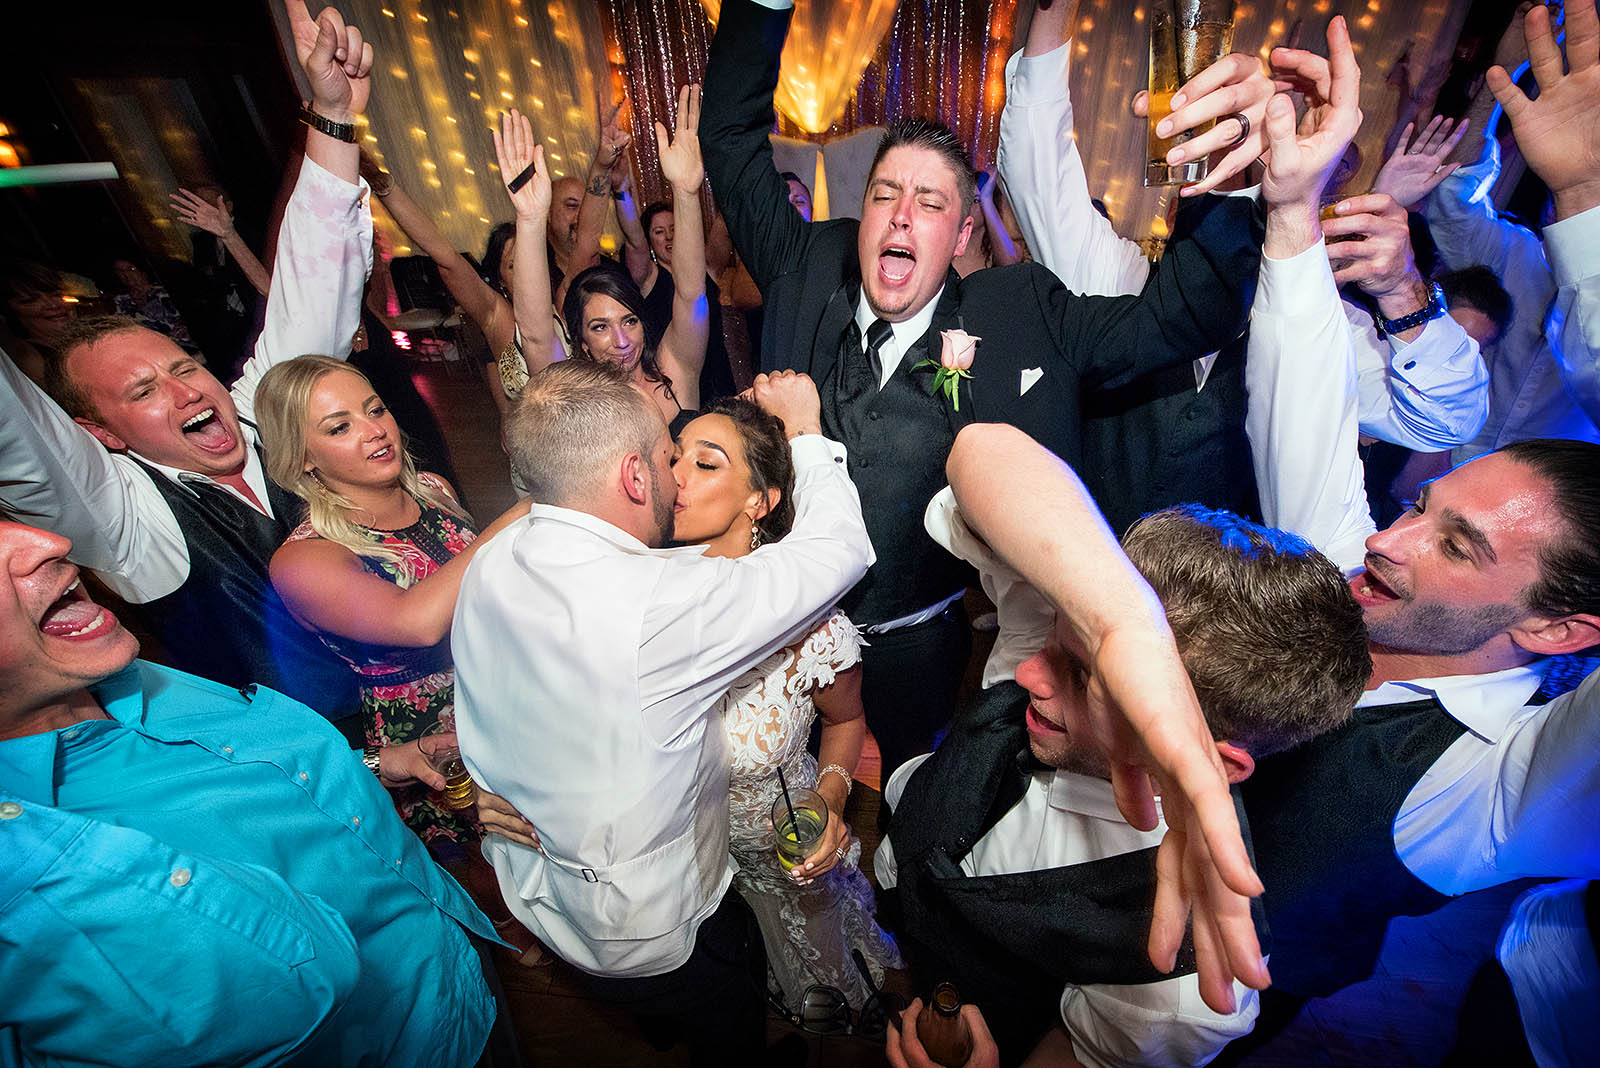 Bride Groom Friends Celebrating on Dance Floor